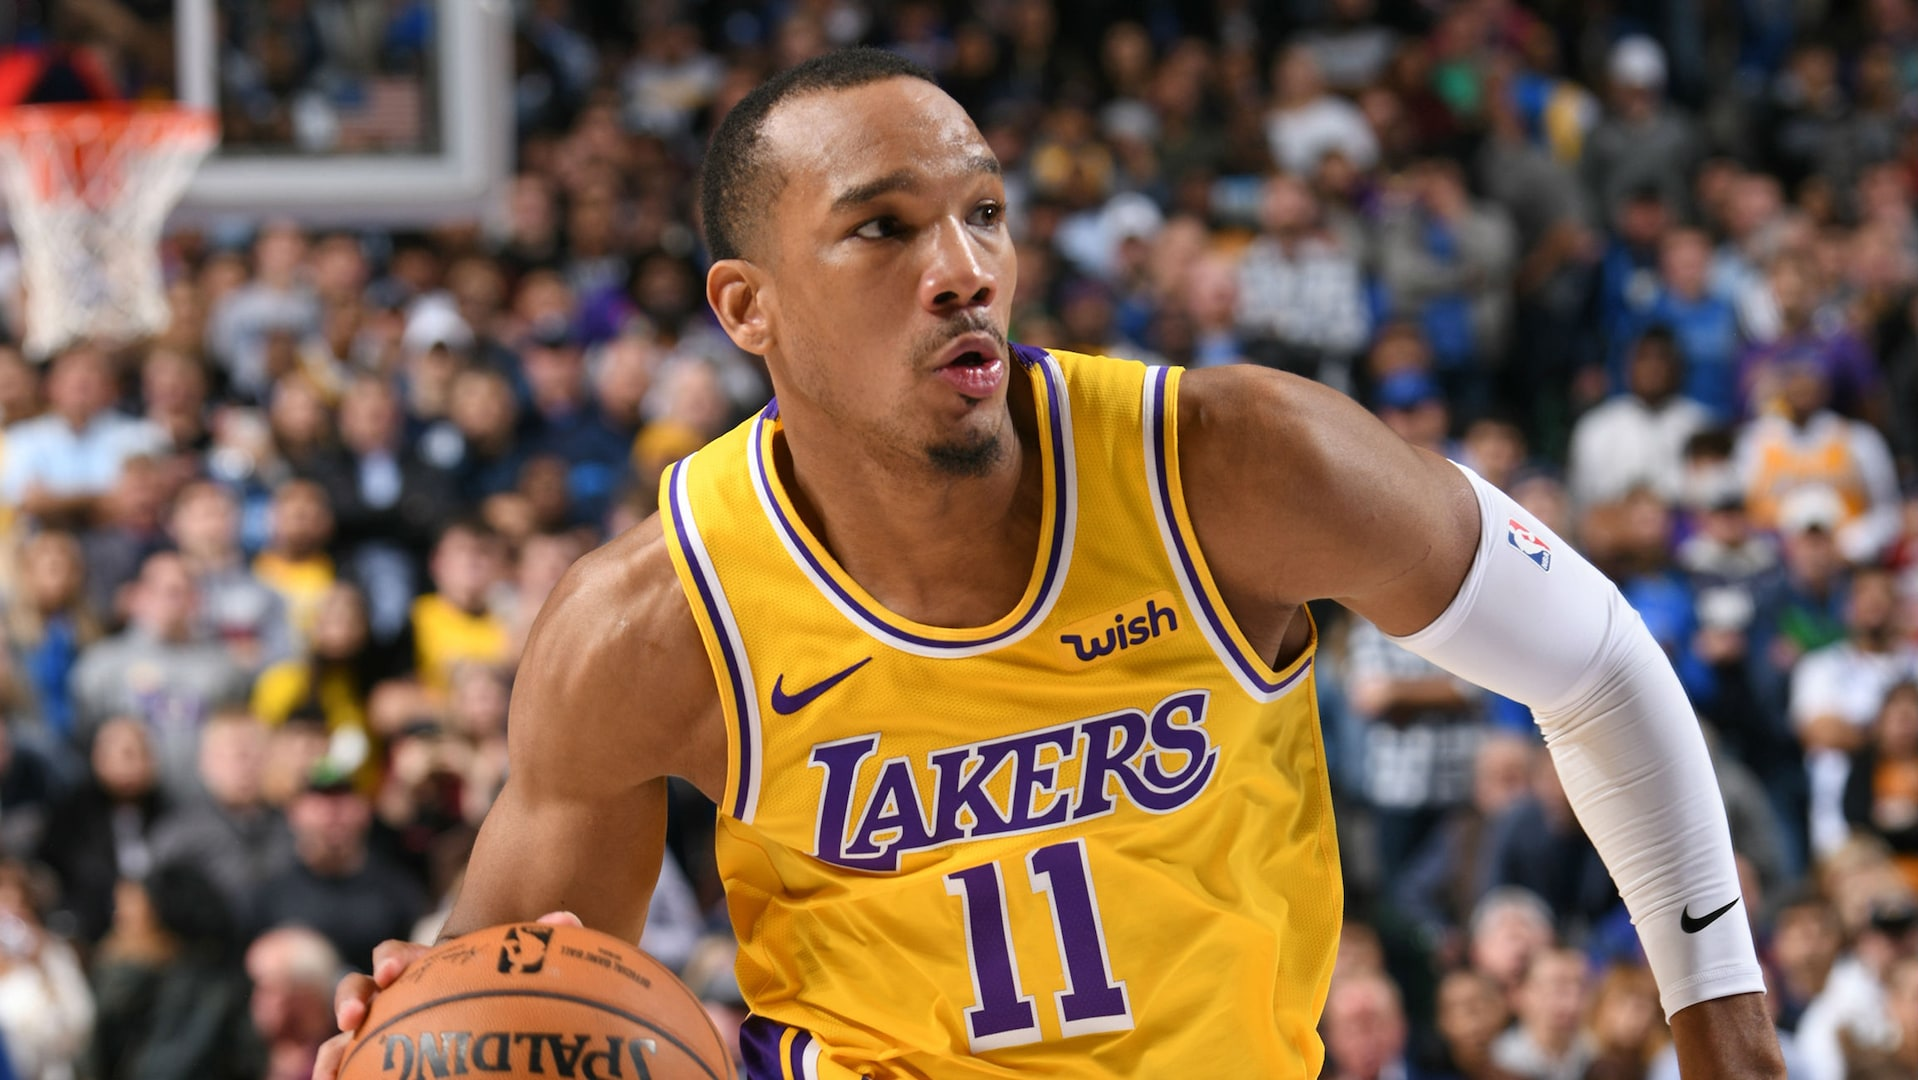 Lakers' Avery Bradley opts out of season restart